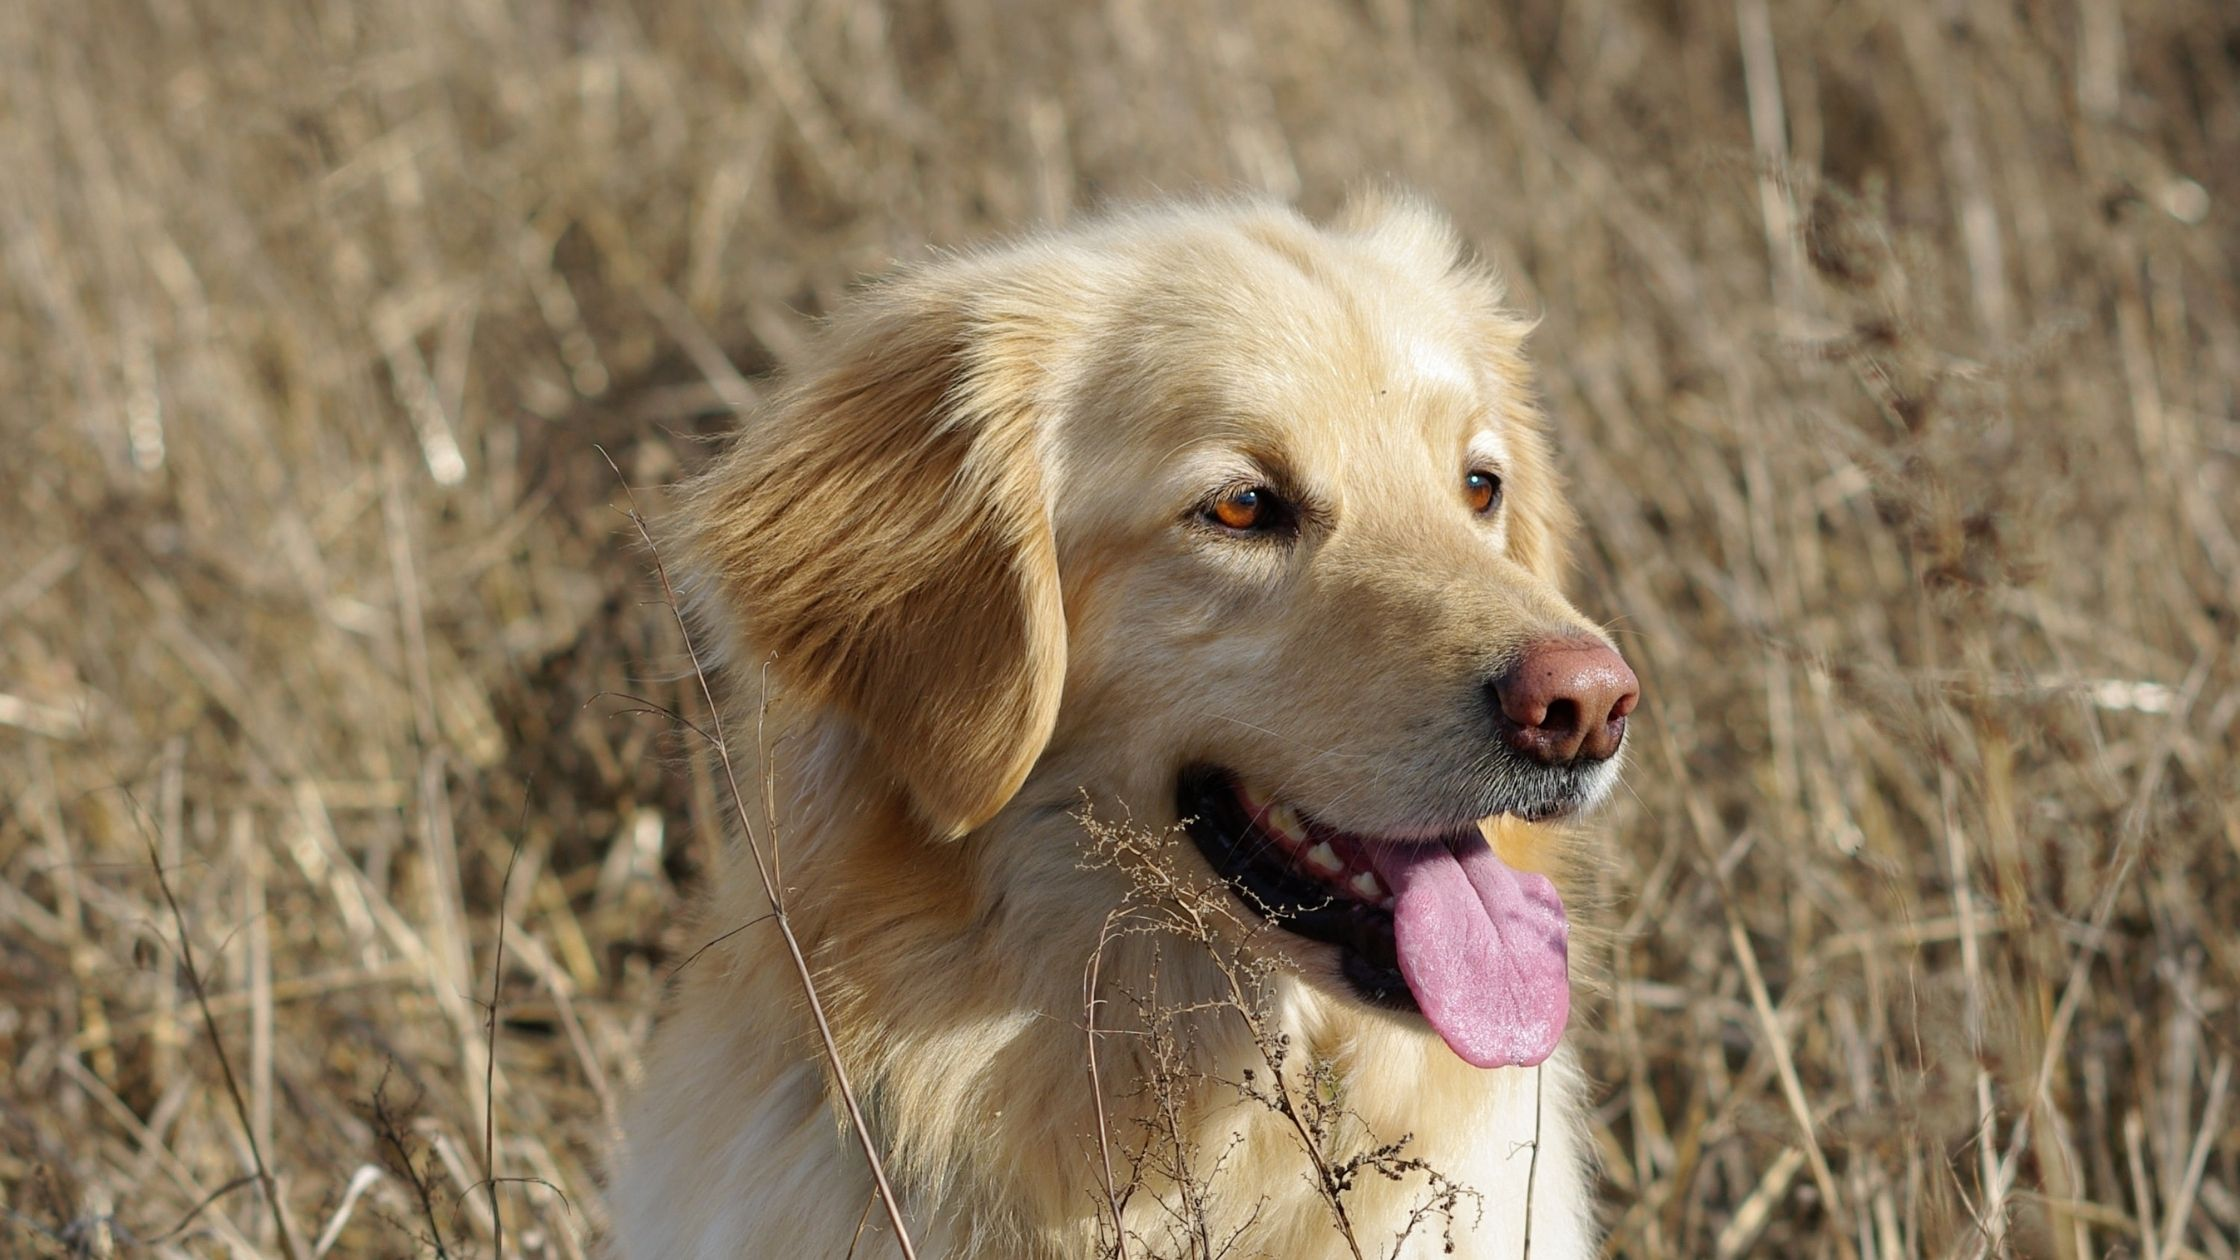 signs that your dog is getting old